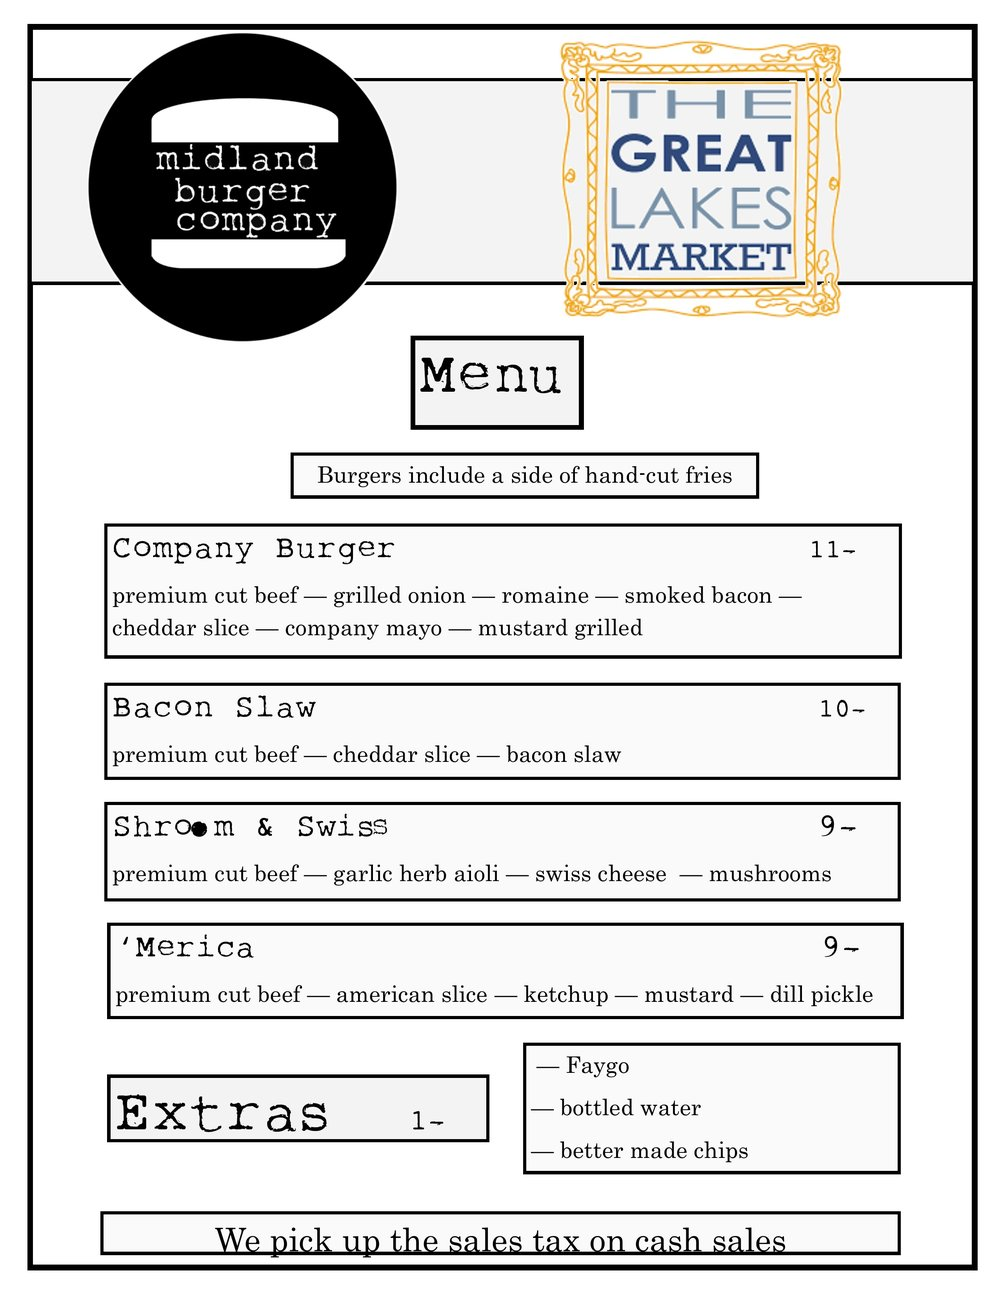 Great Lakes Market Menu.jpg